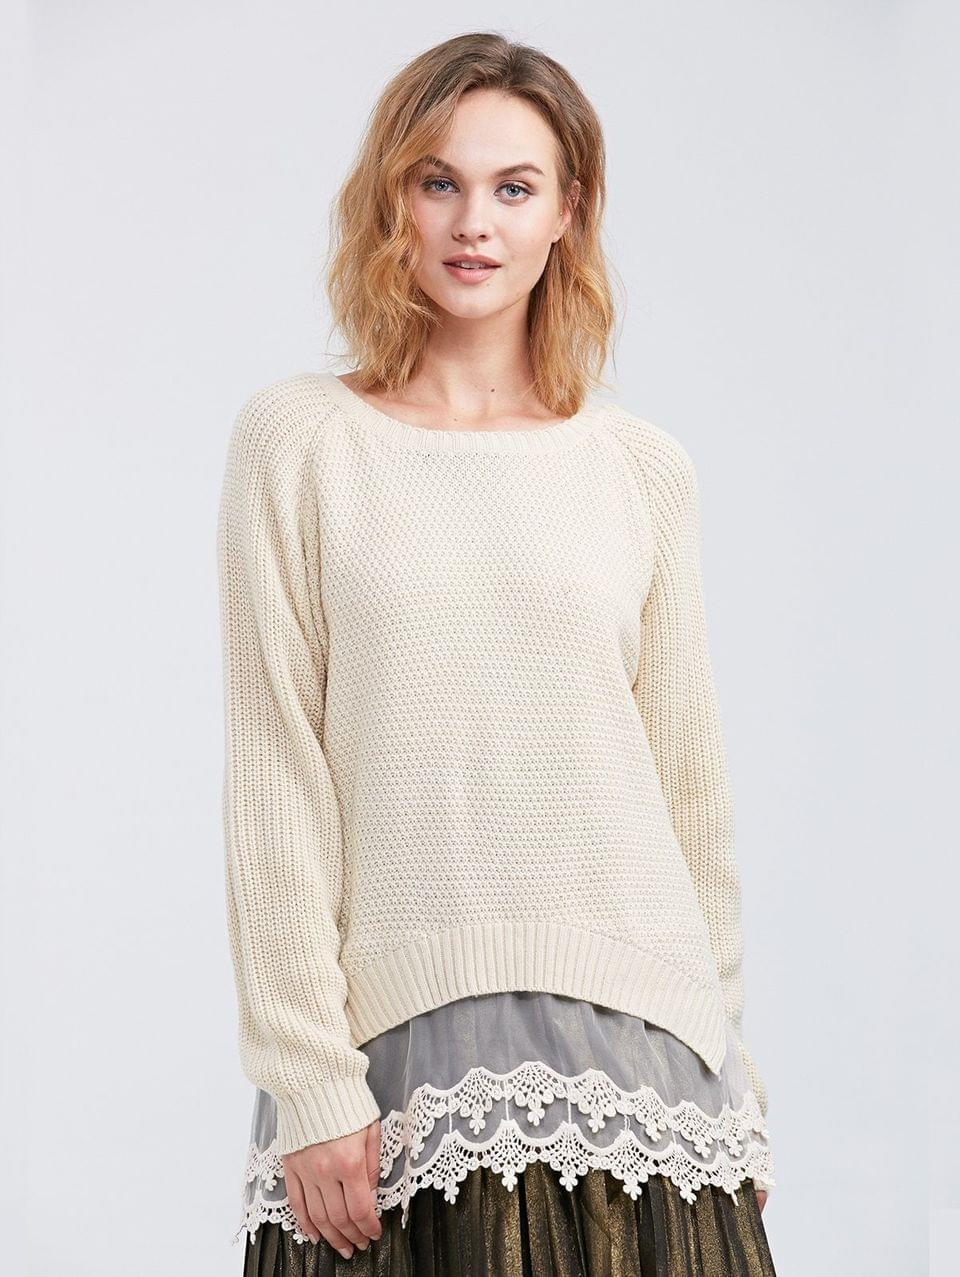 Women's Raglan Sleeve Lace Panel Pullover Sweater - Off-white M